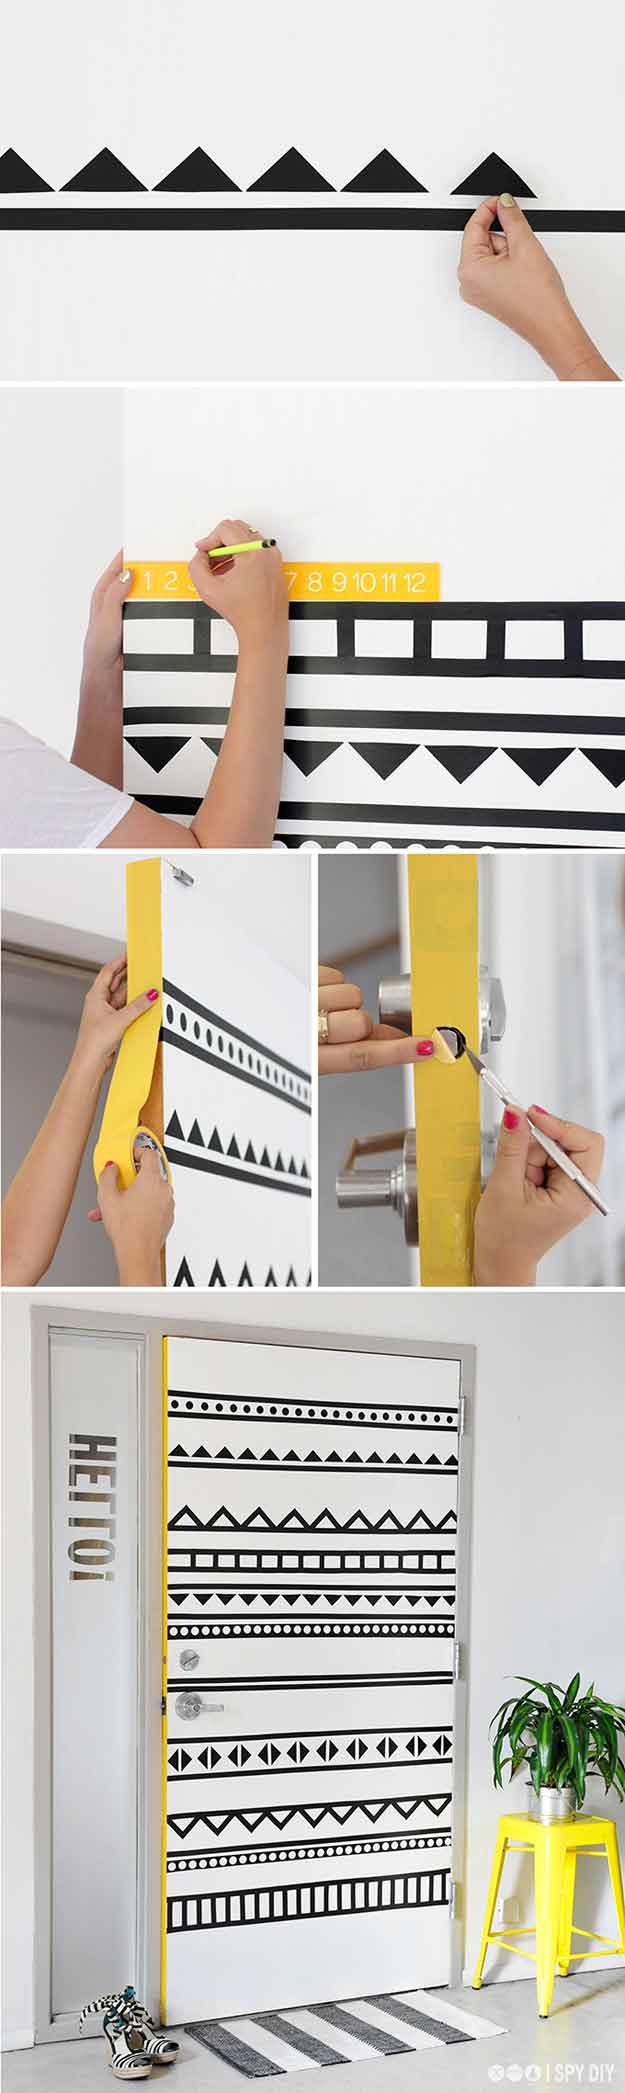 37 insanely cute teen bedroom ideas for diy decor diy door art - Decorating Ideas For Teenage Bedrooms